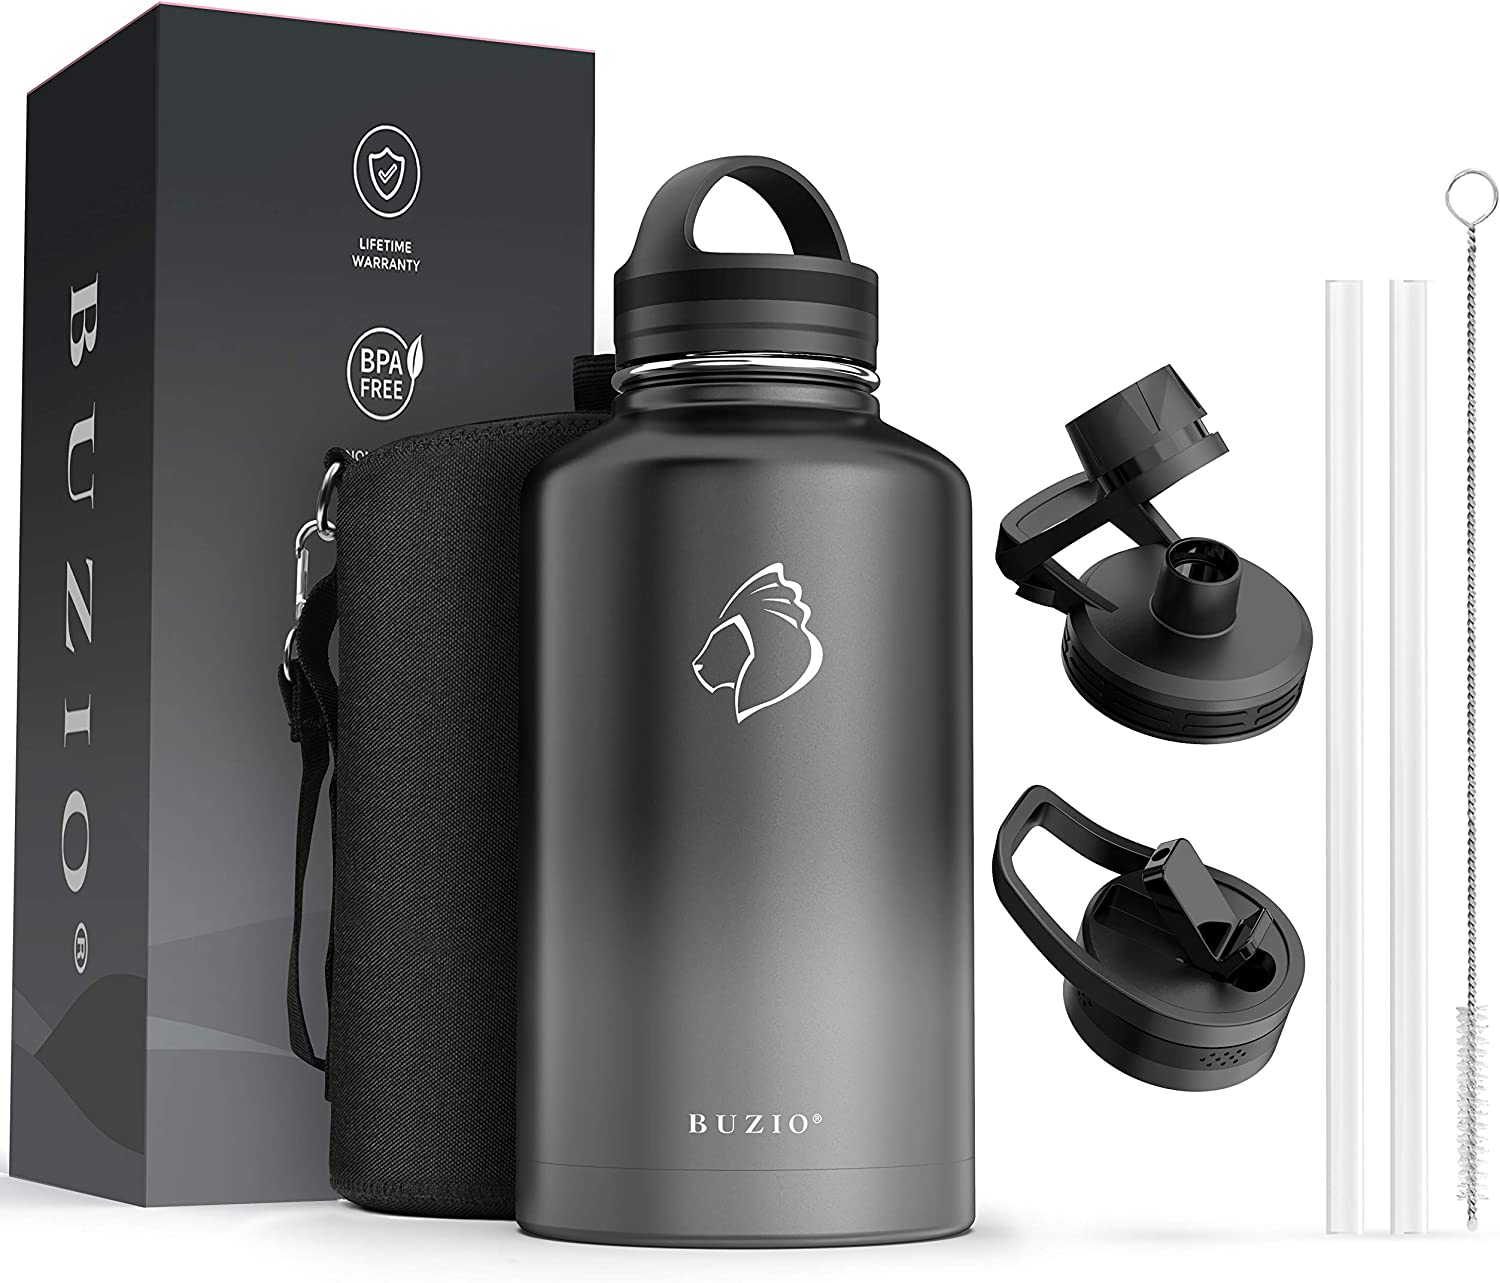 BUZIO Water Bottle with Straw lid, Spout Lid, Hand Lid and Carrying Pouch, 40oz 64oz Stainless Steel Water Flask Jug, Cold for 48 Hrs Hot for 24 Hrs Double Vacuum Thermo Canteen Mug, BPA-Free